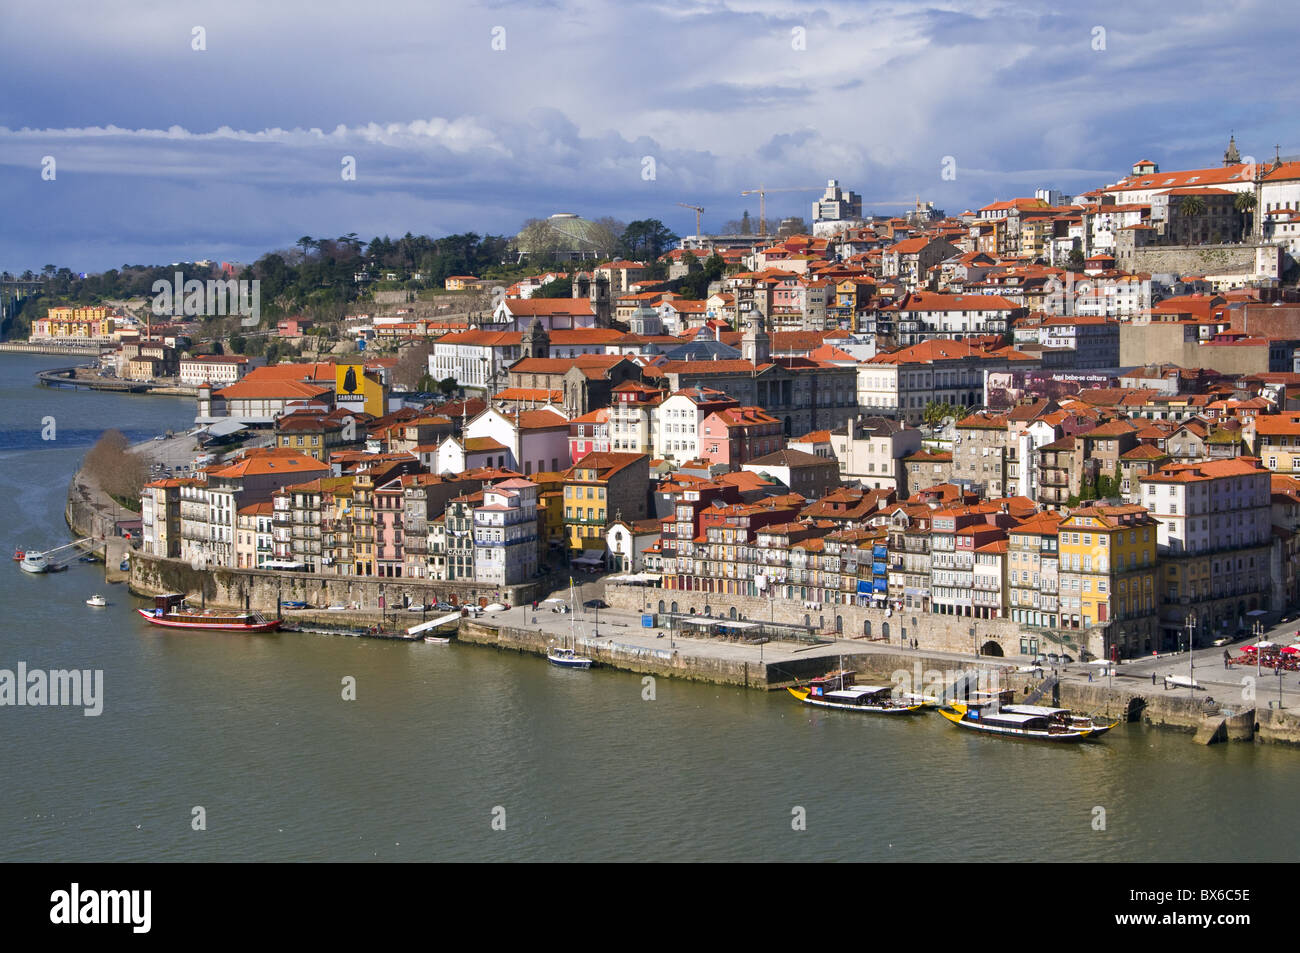 Old town of Oporto, UNESCO World Heritage Site, Portugal, Europe - Stock Image